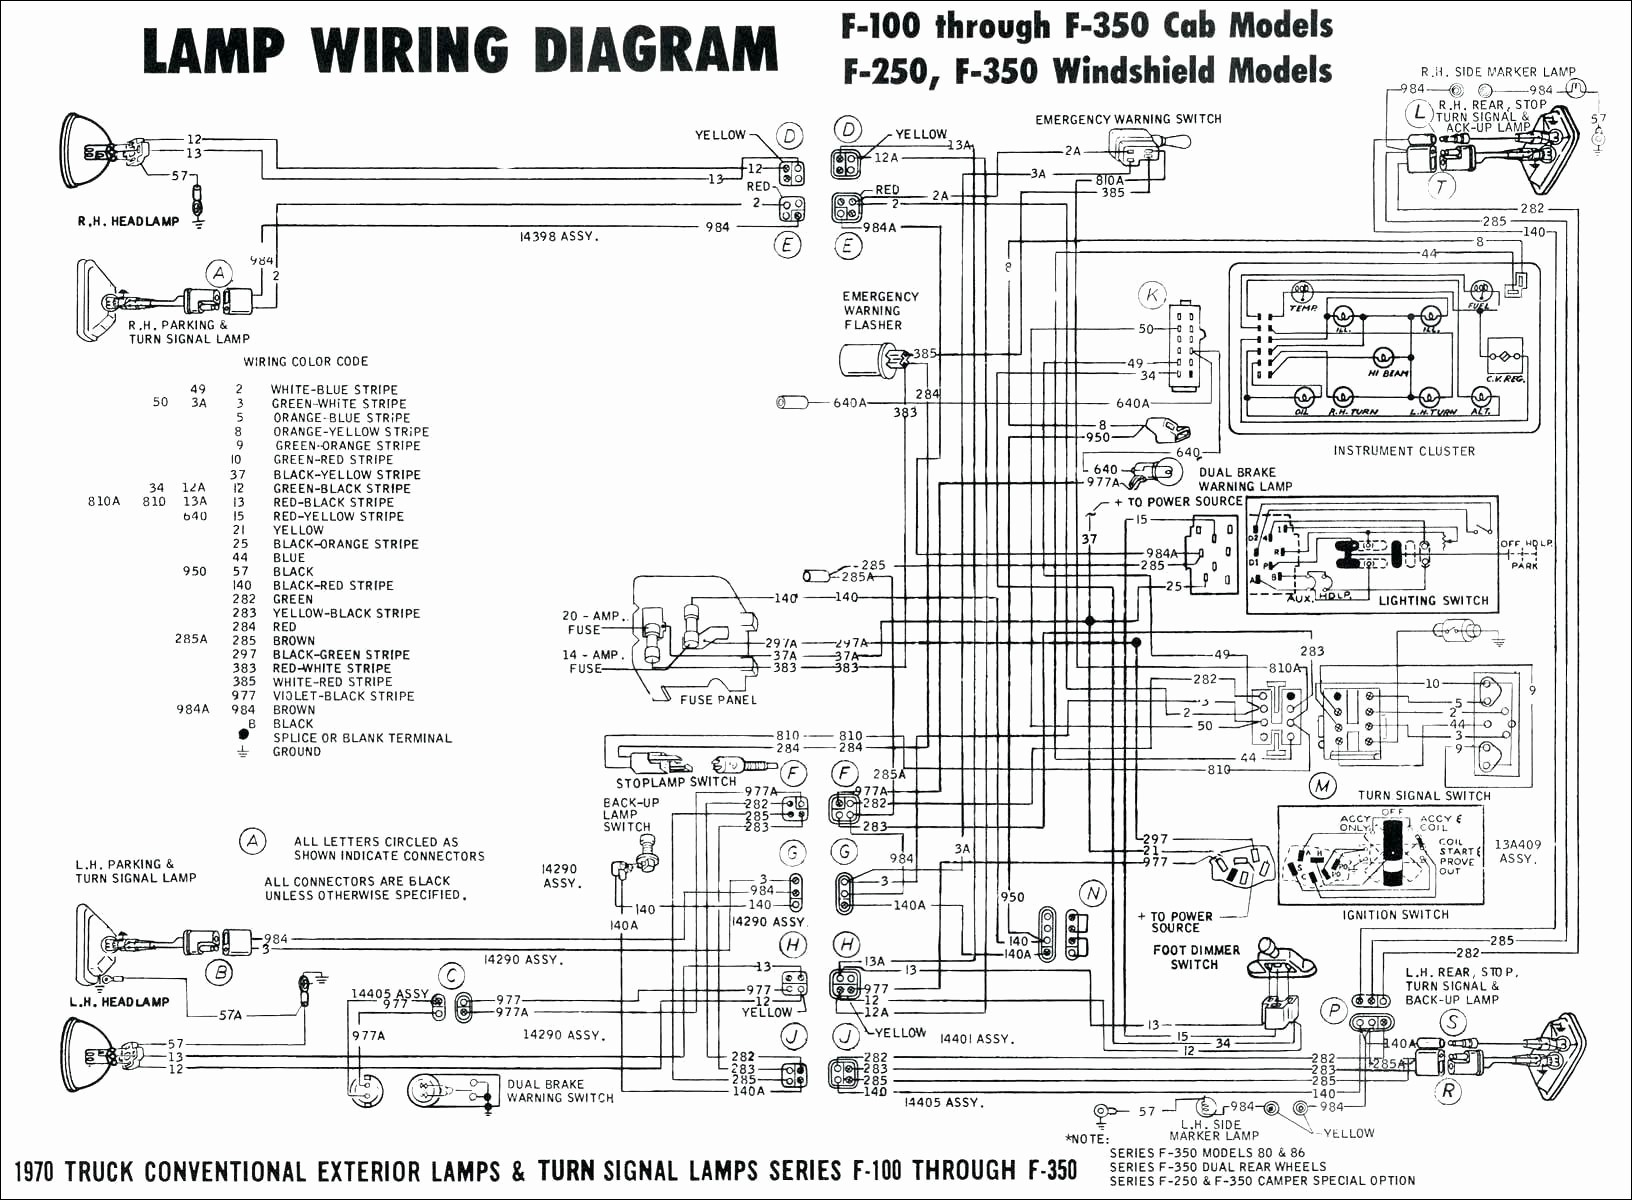 Yamaha G1 Wiring Diagram from static-cdn.imageservice.cloud